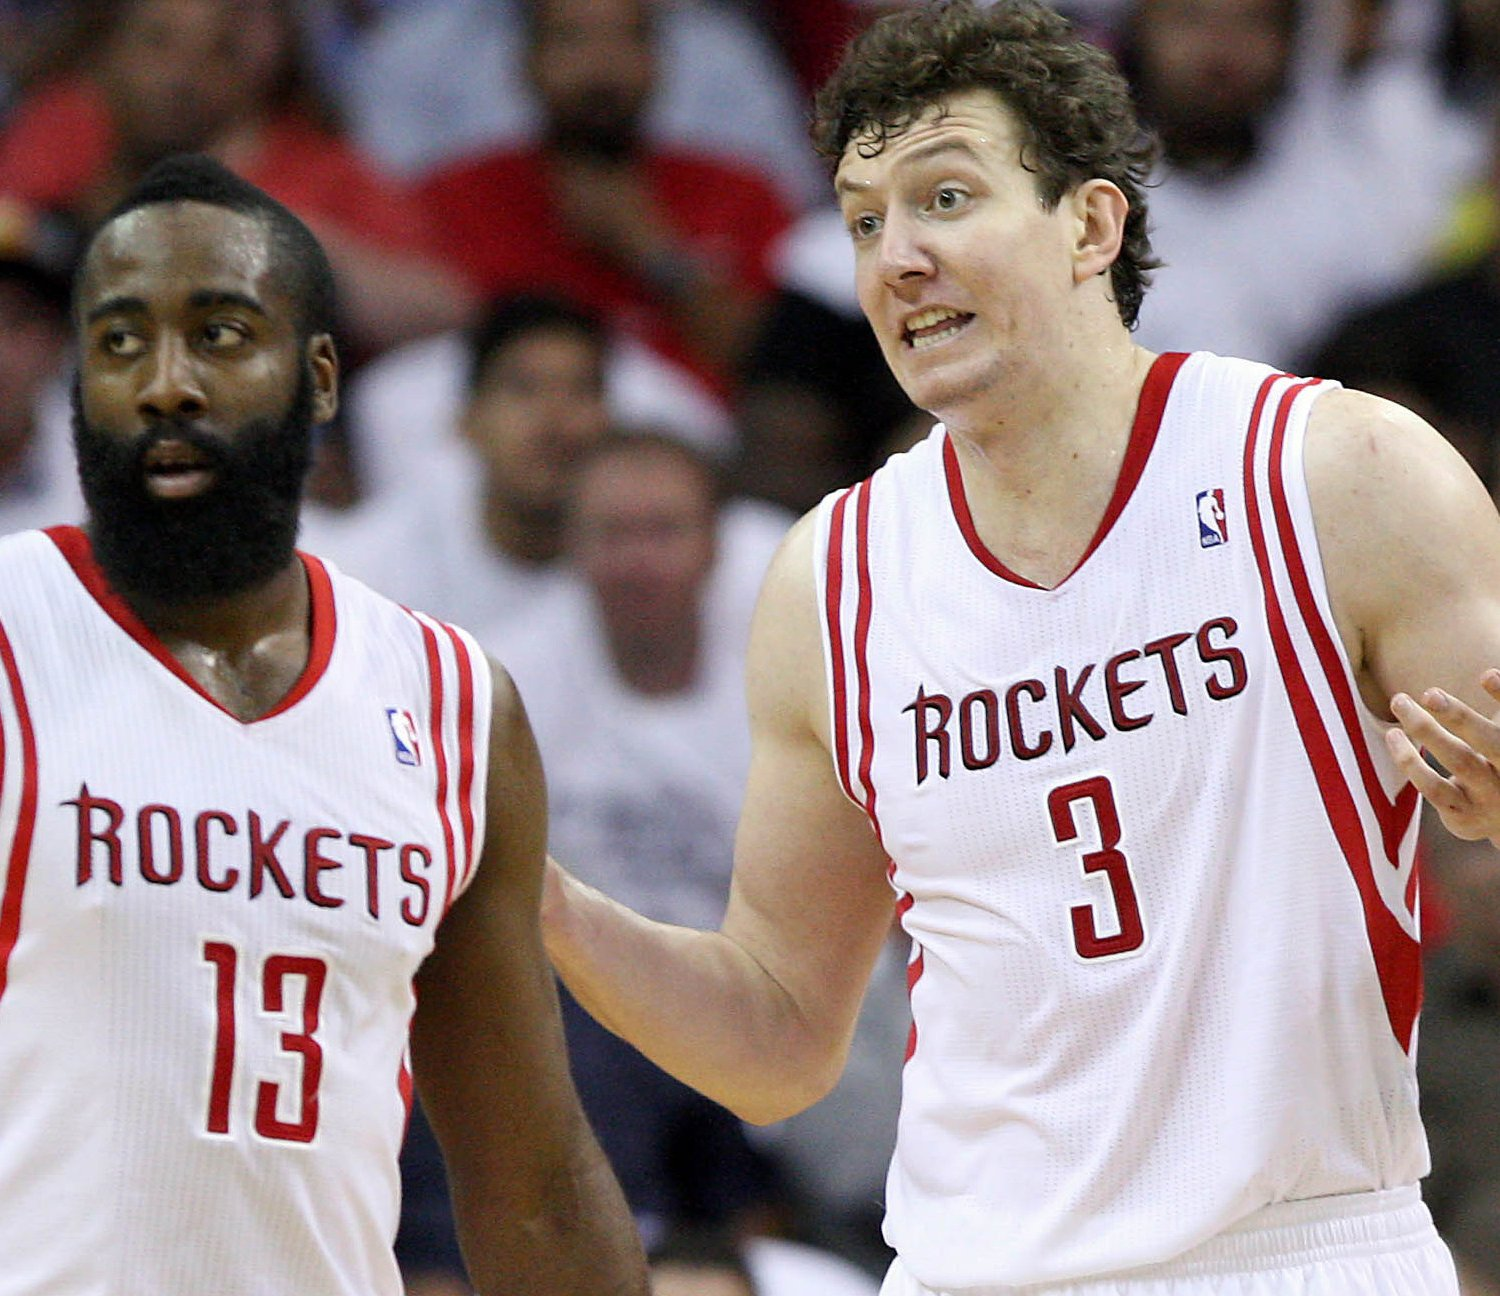 Houston Rockets Championship Roster: What Houston Rockets Need To Do To Win An NBA Championship